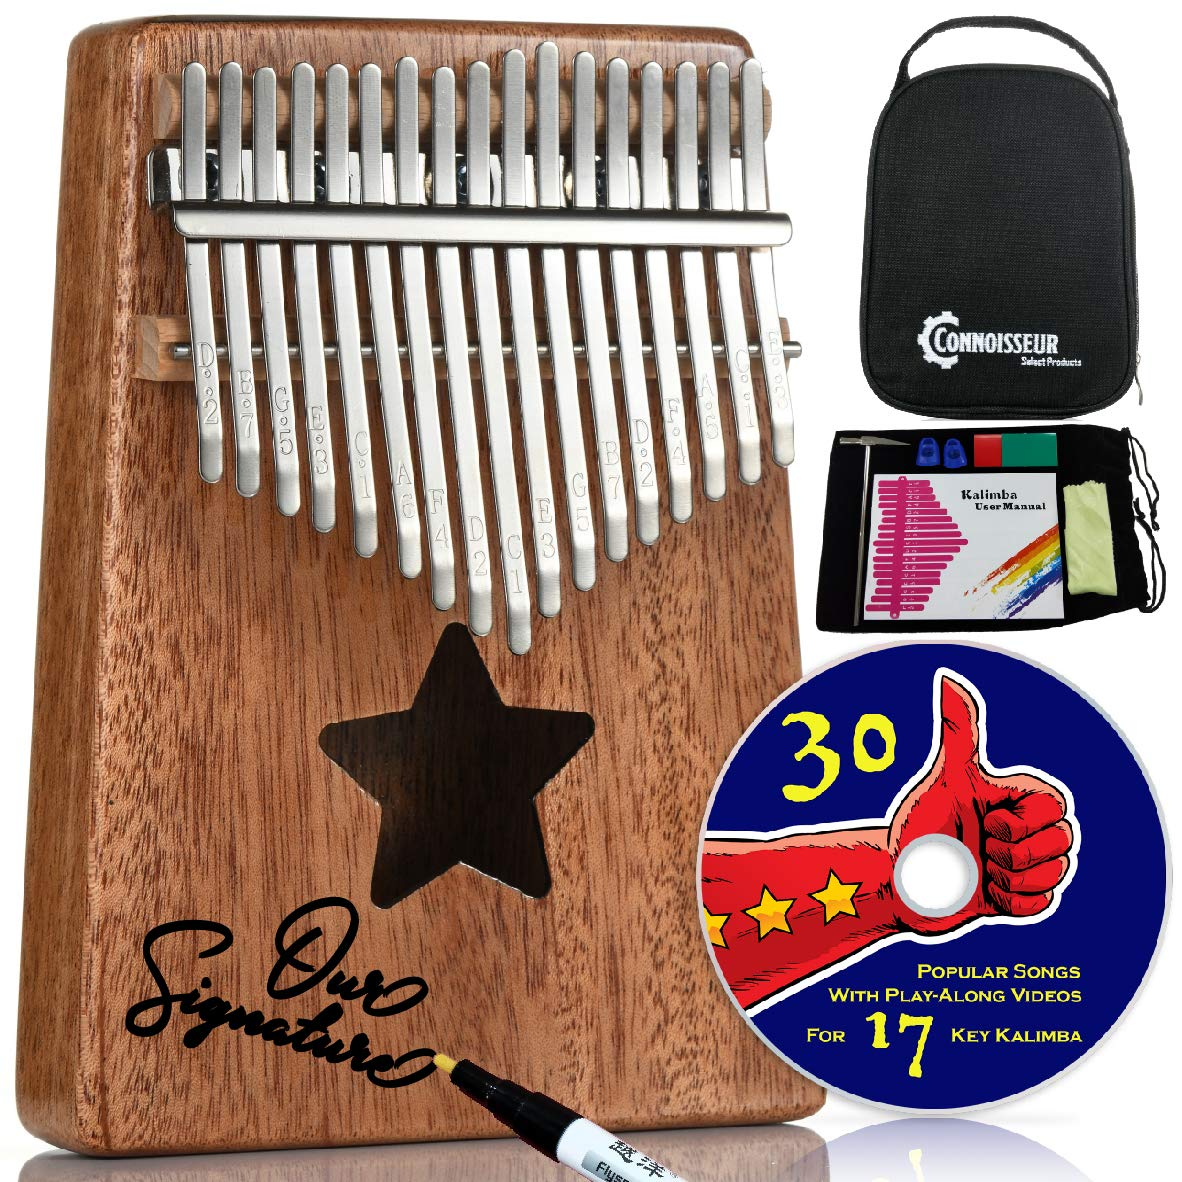 Kalimba 17 Key Thumb Piano - Musical instruments for adults and kids with all accessories, free music e-book and play along videos - Best relaxation gifts by Connoisseur Select Products